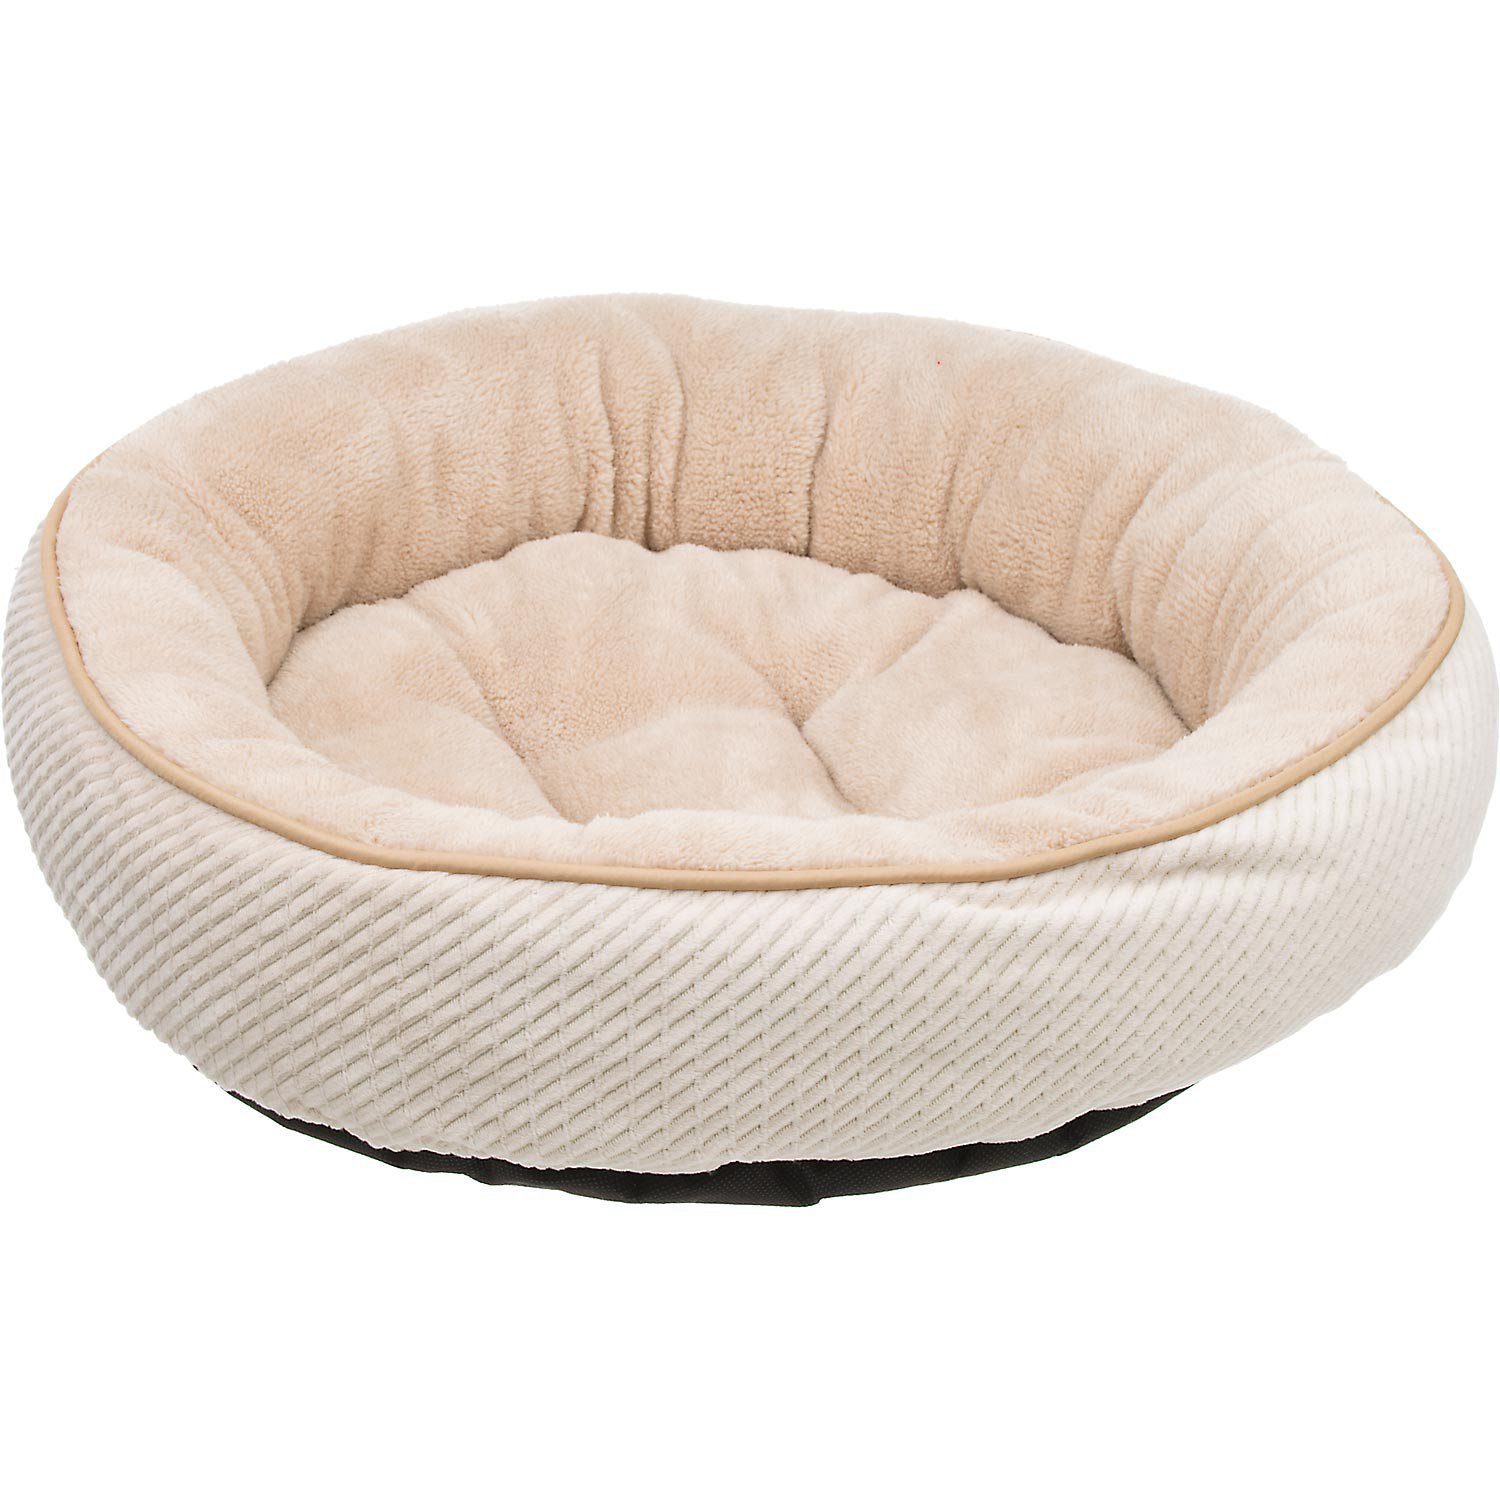 Petco Textured Round Cat Bed in Pearl